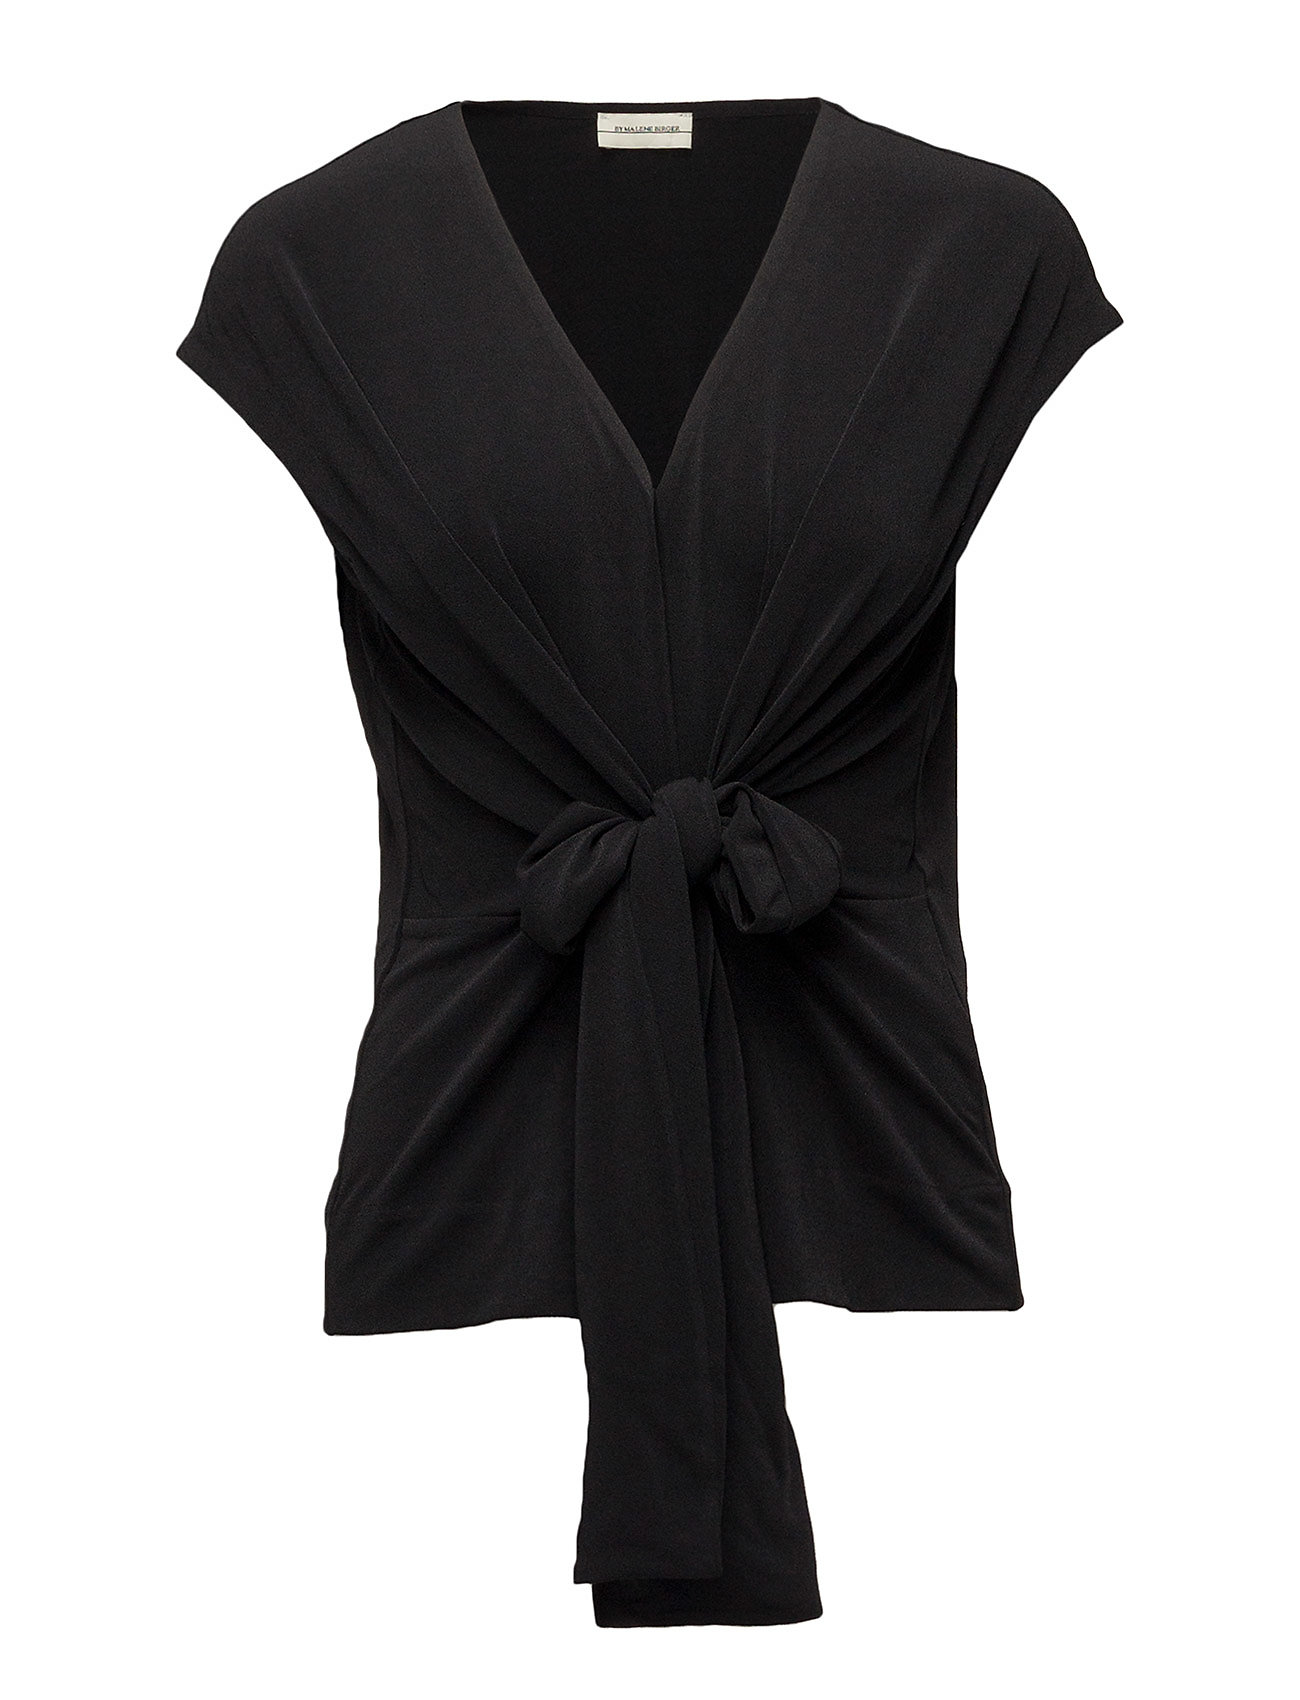 By Malene Birger MANAS - BLACK